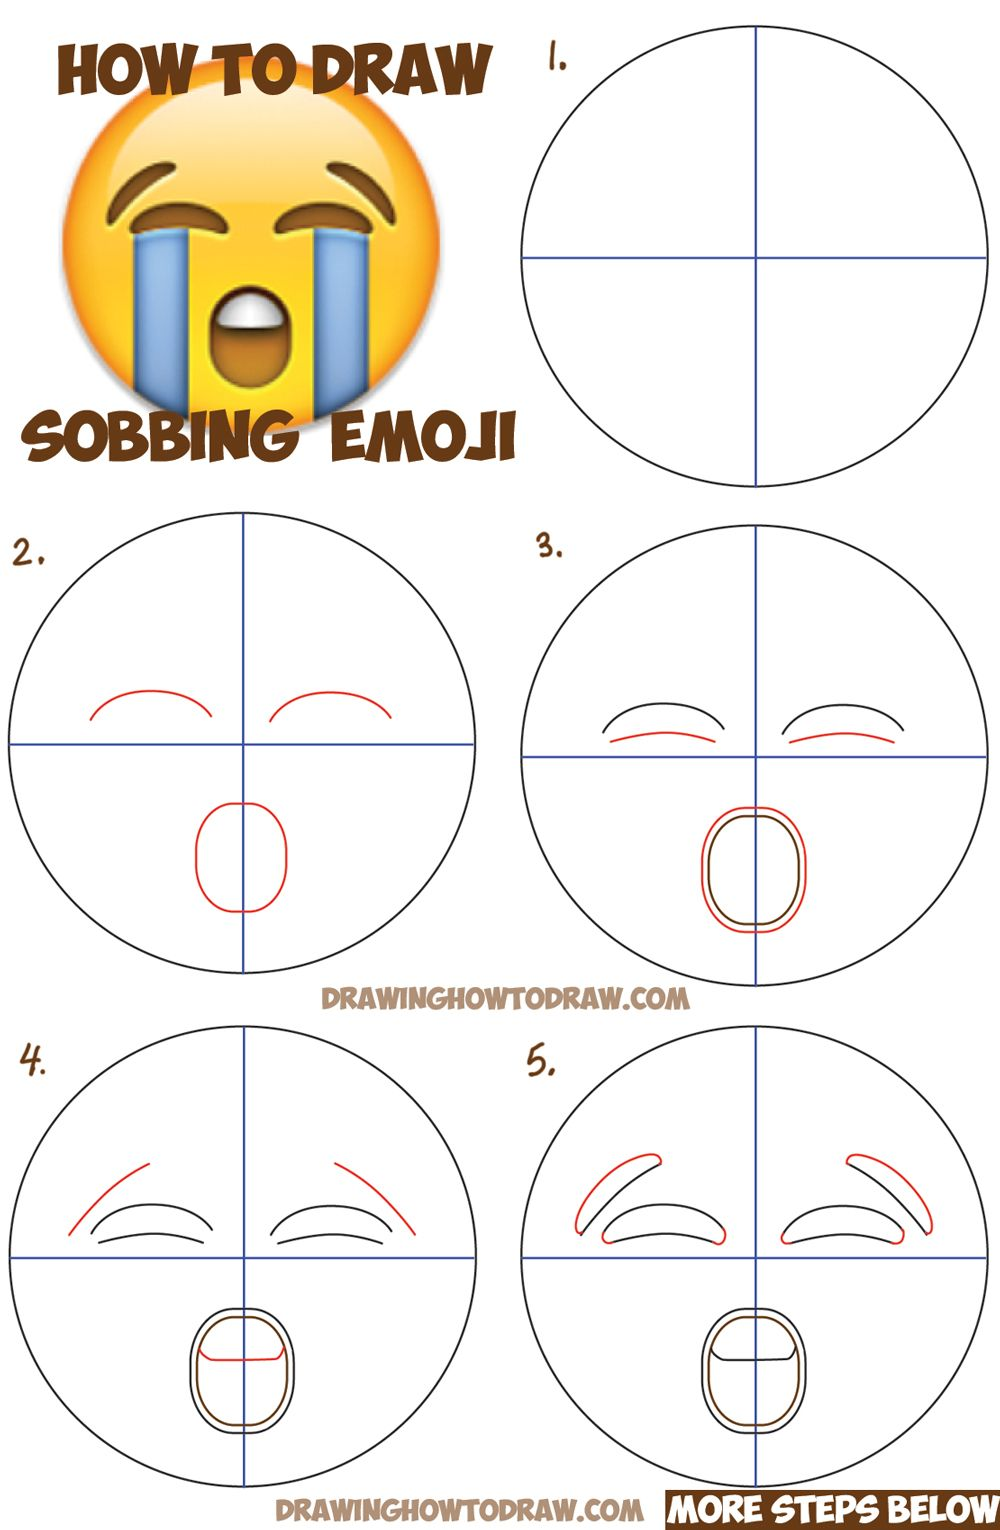 How To Draw Sobbing Crying Emoji Face With Easy Steps Lesson Emoji